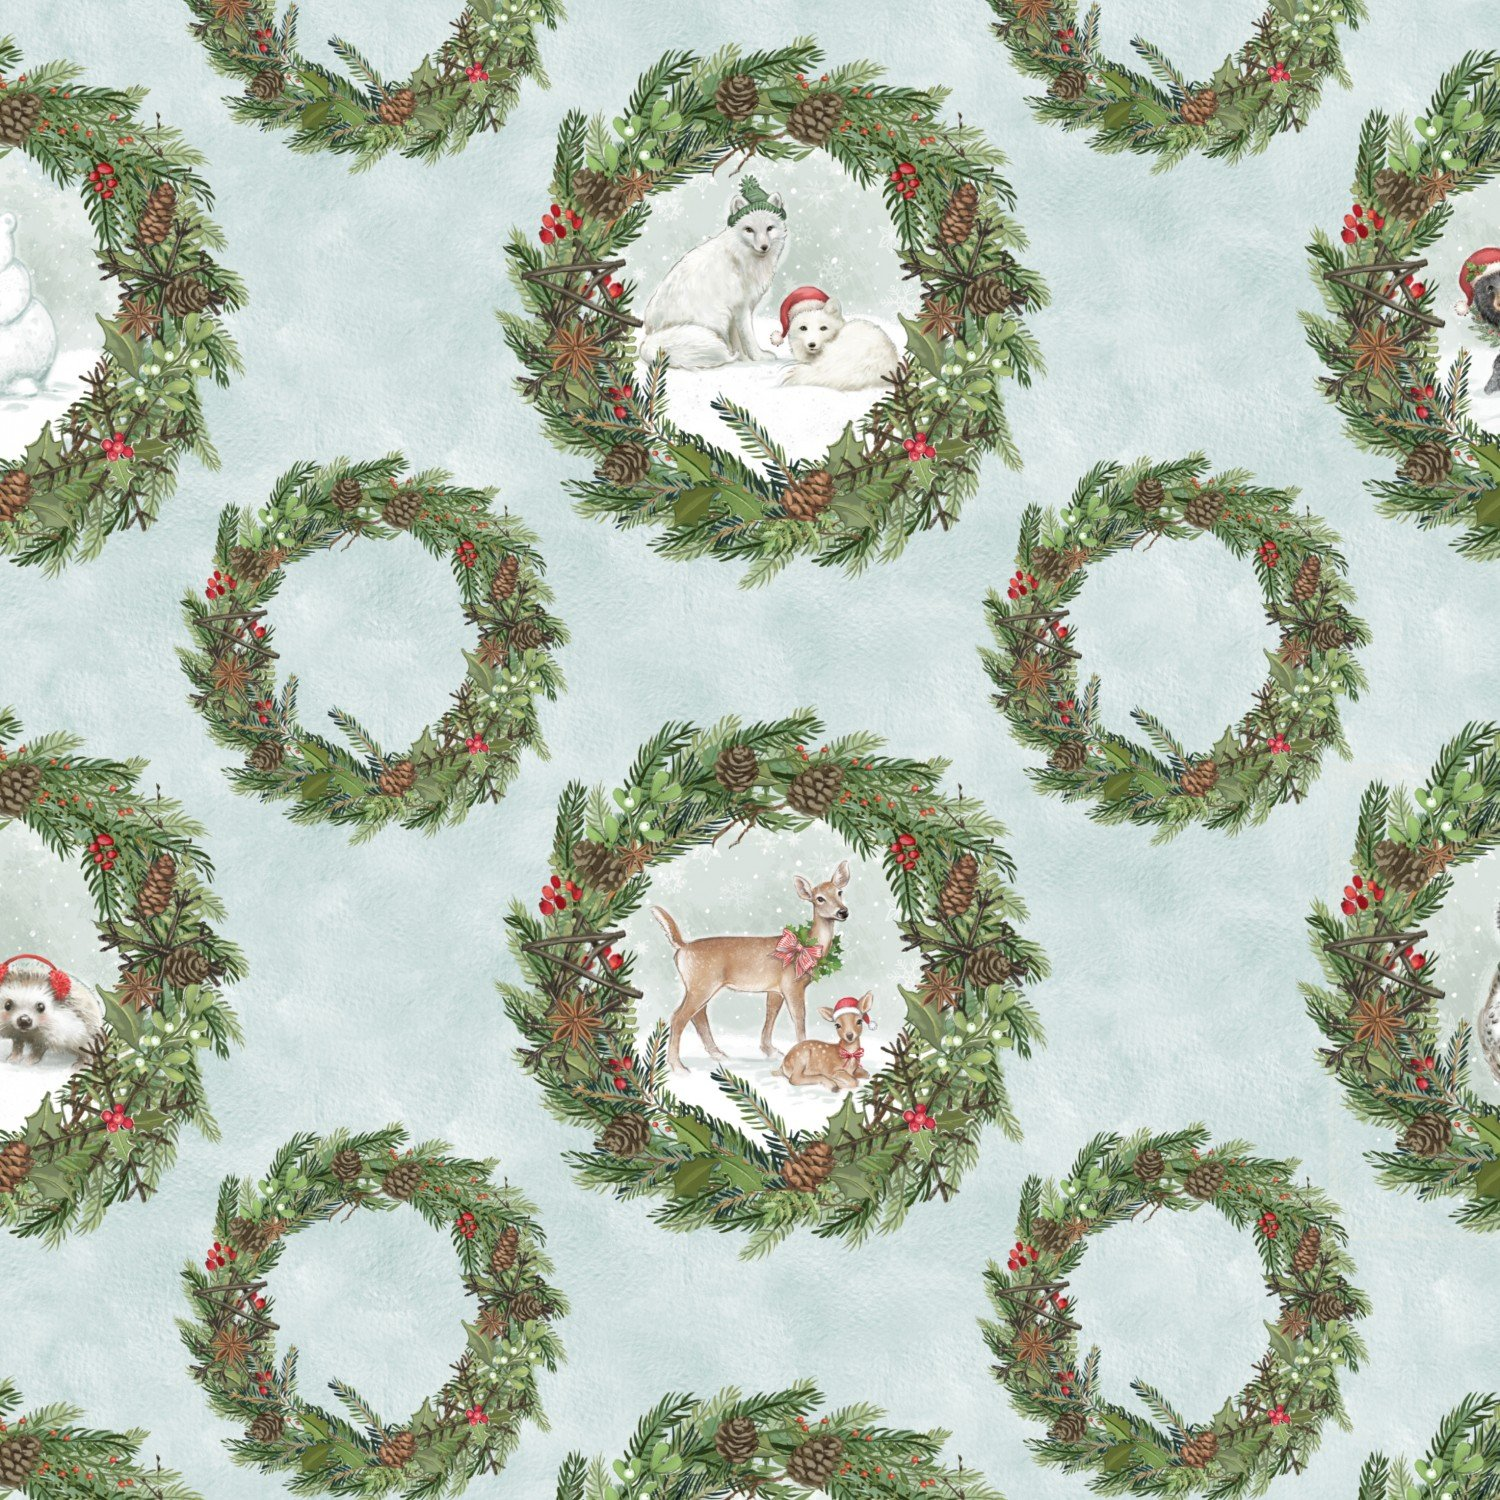 Woodland Friends Holiday Fabric 44 Inches Wide from Wilmington Prints